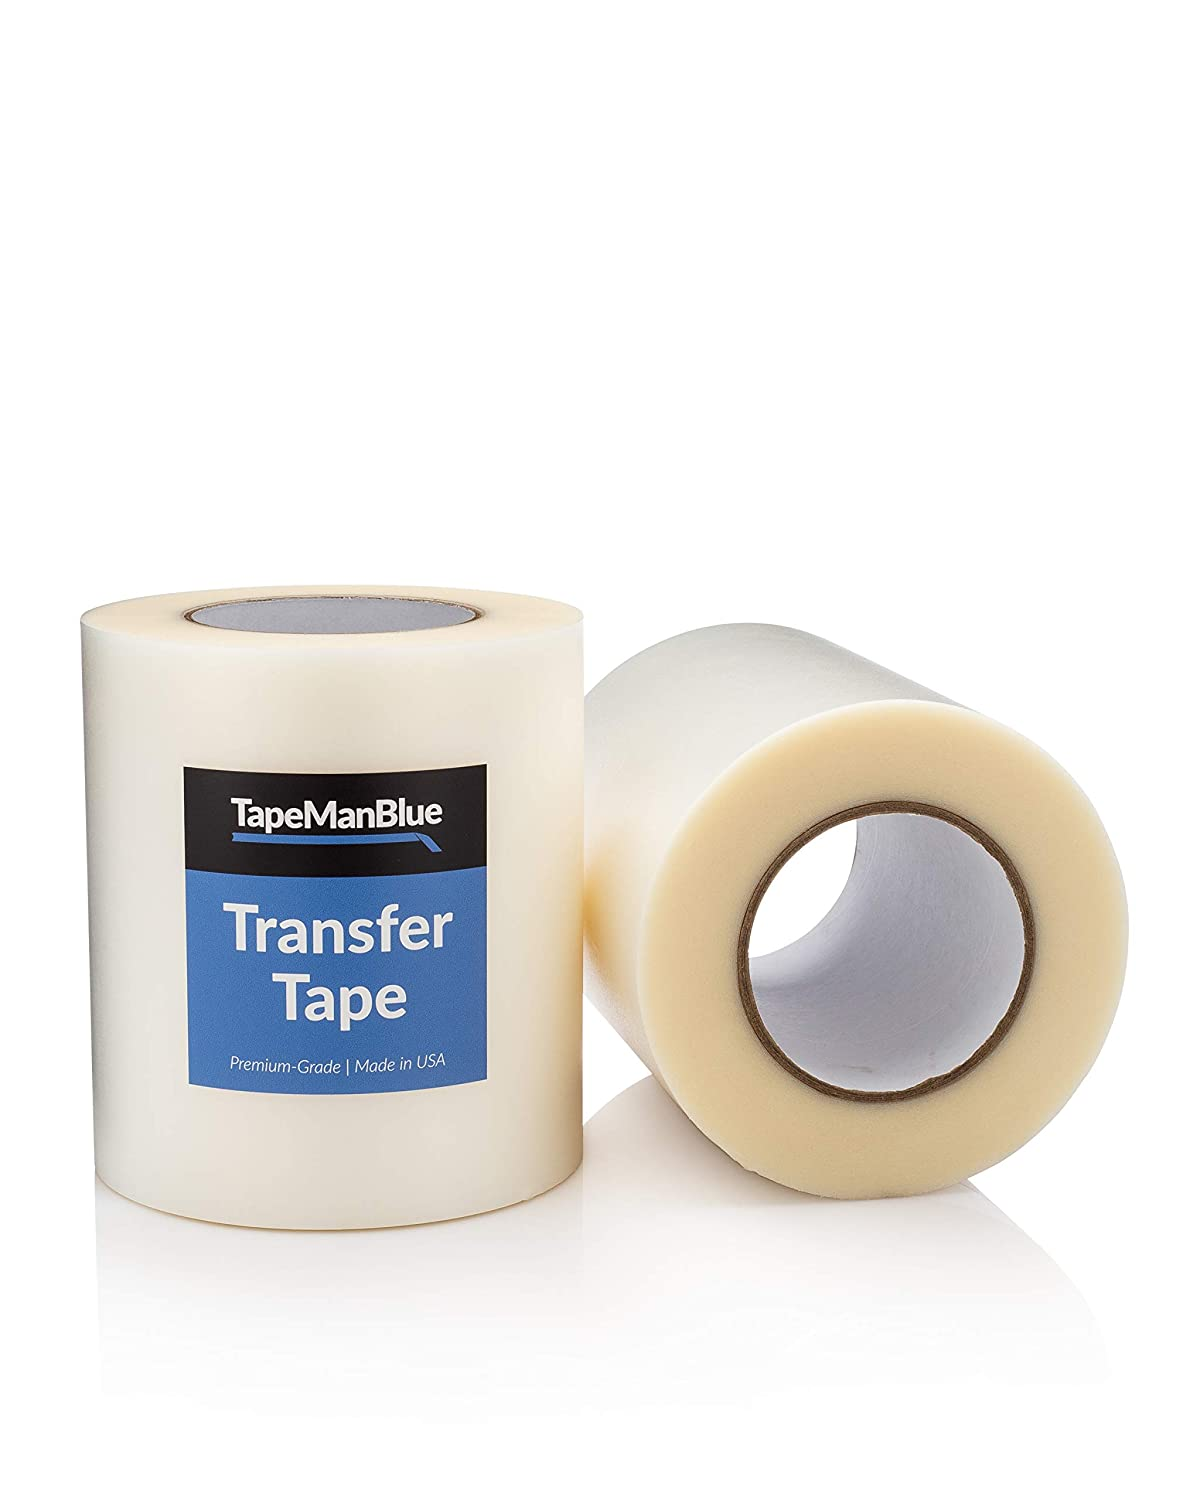 6' x 300' Roll of Clear, High-Tack Application Tape/Transfer Tape for Cricut, Silhouette, Pazzles, Craft ROBO, QuicKutz, Craft Cutters, Die Cutters, Sign Plotters - Easy to Use for Vinyl Application TapeManBlue